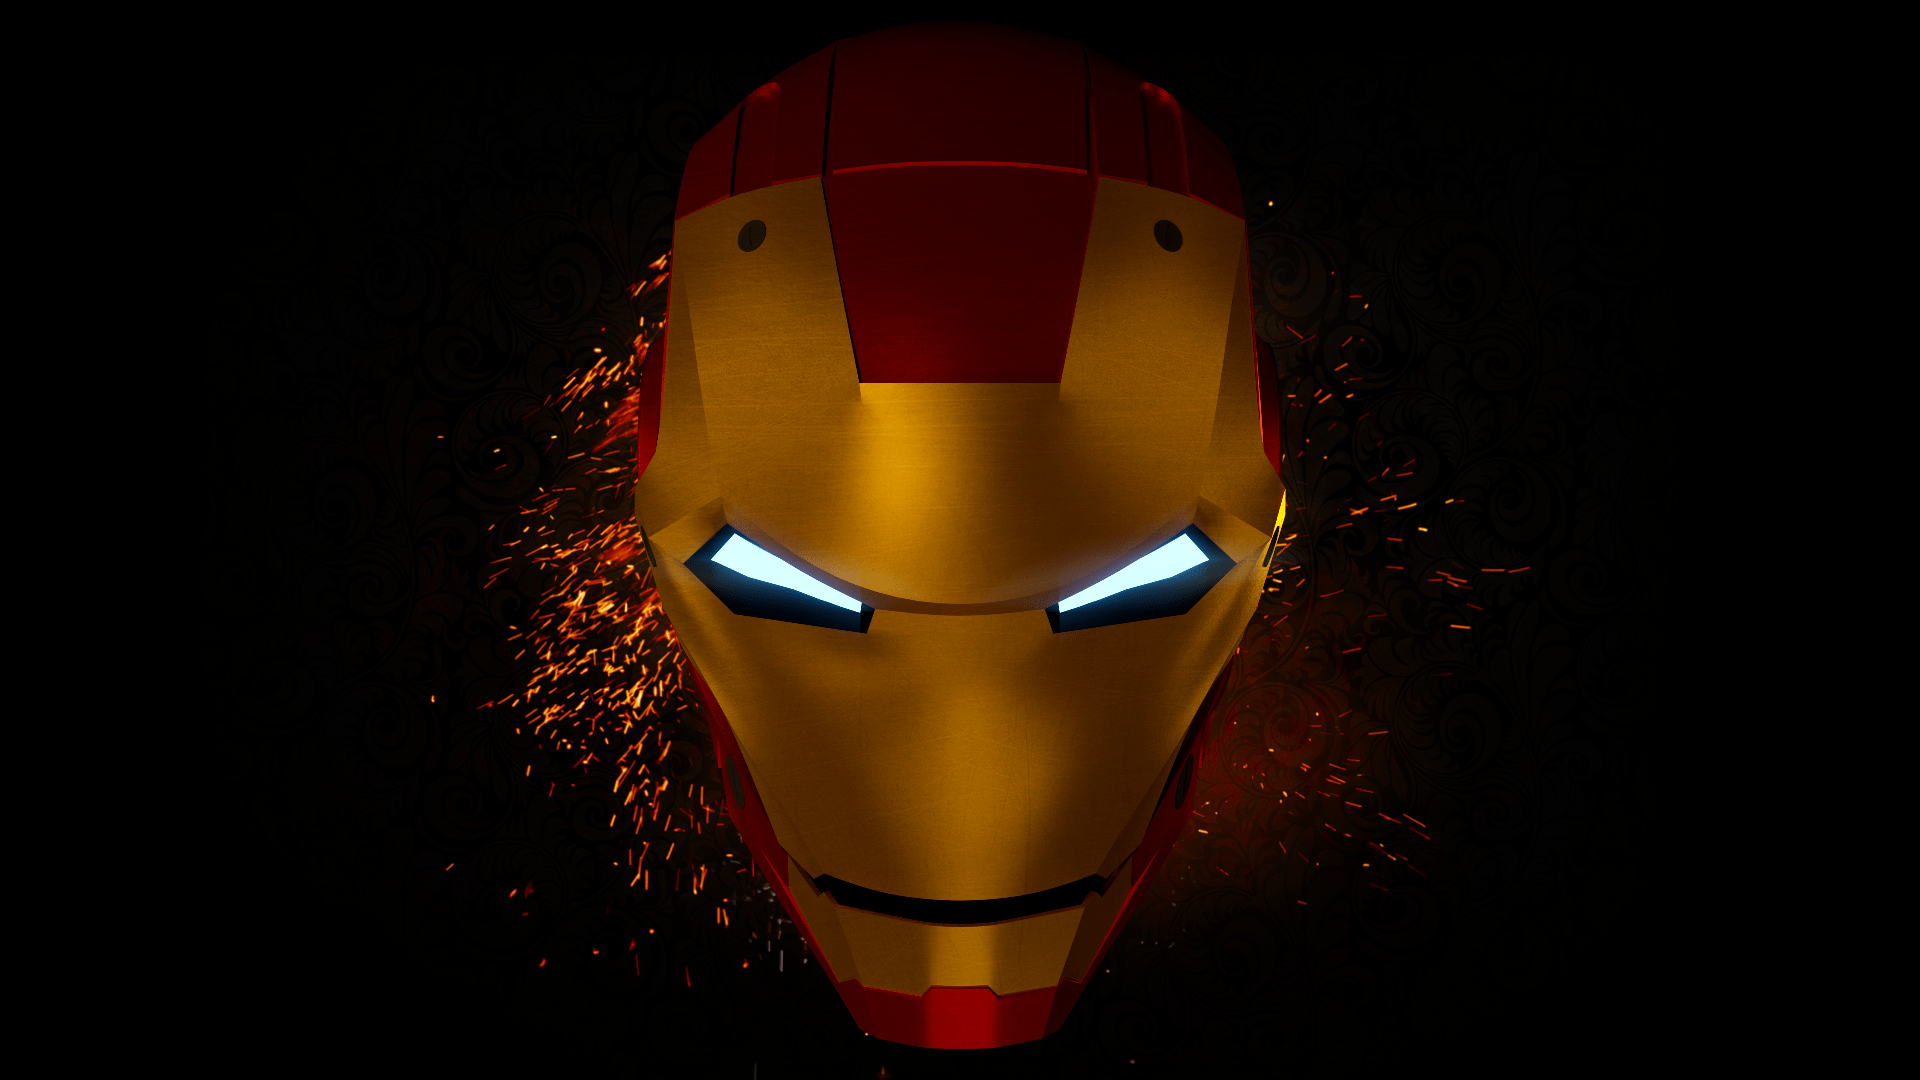 Wallpaper Girly Quotes Download Iron Man Head Wallpaper Gallery